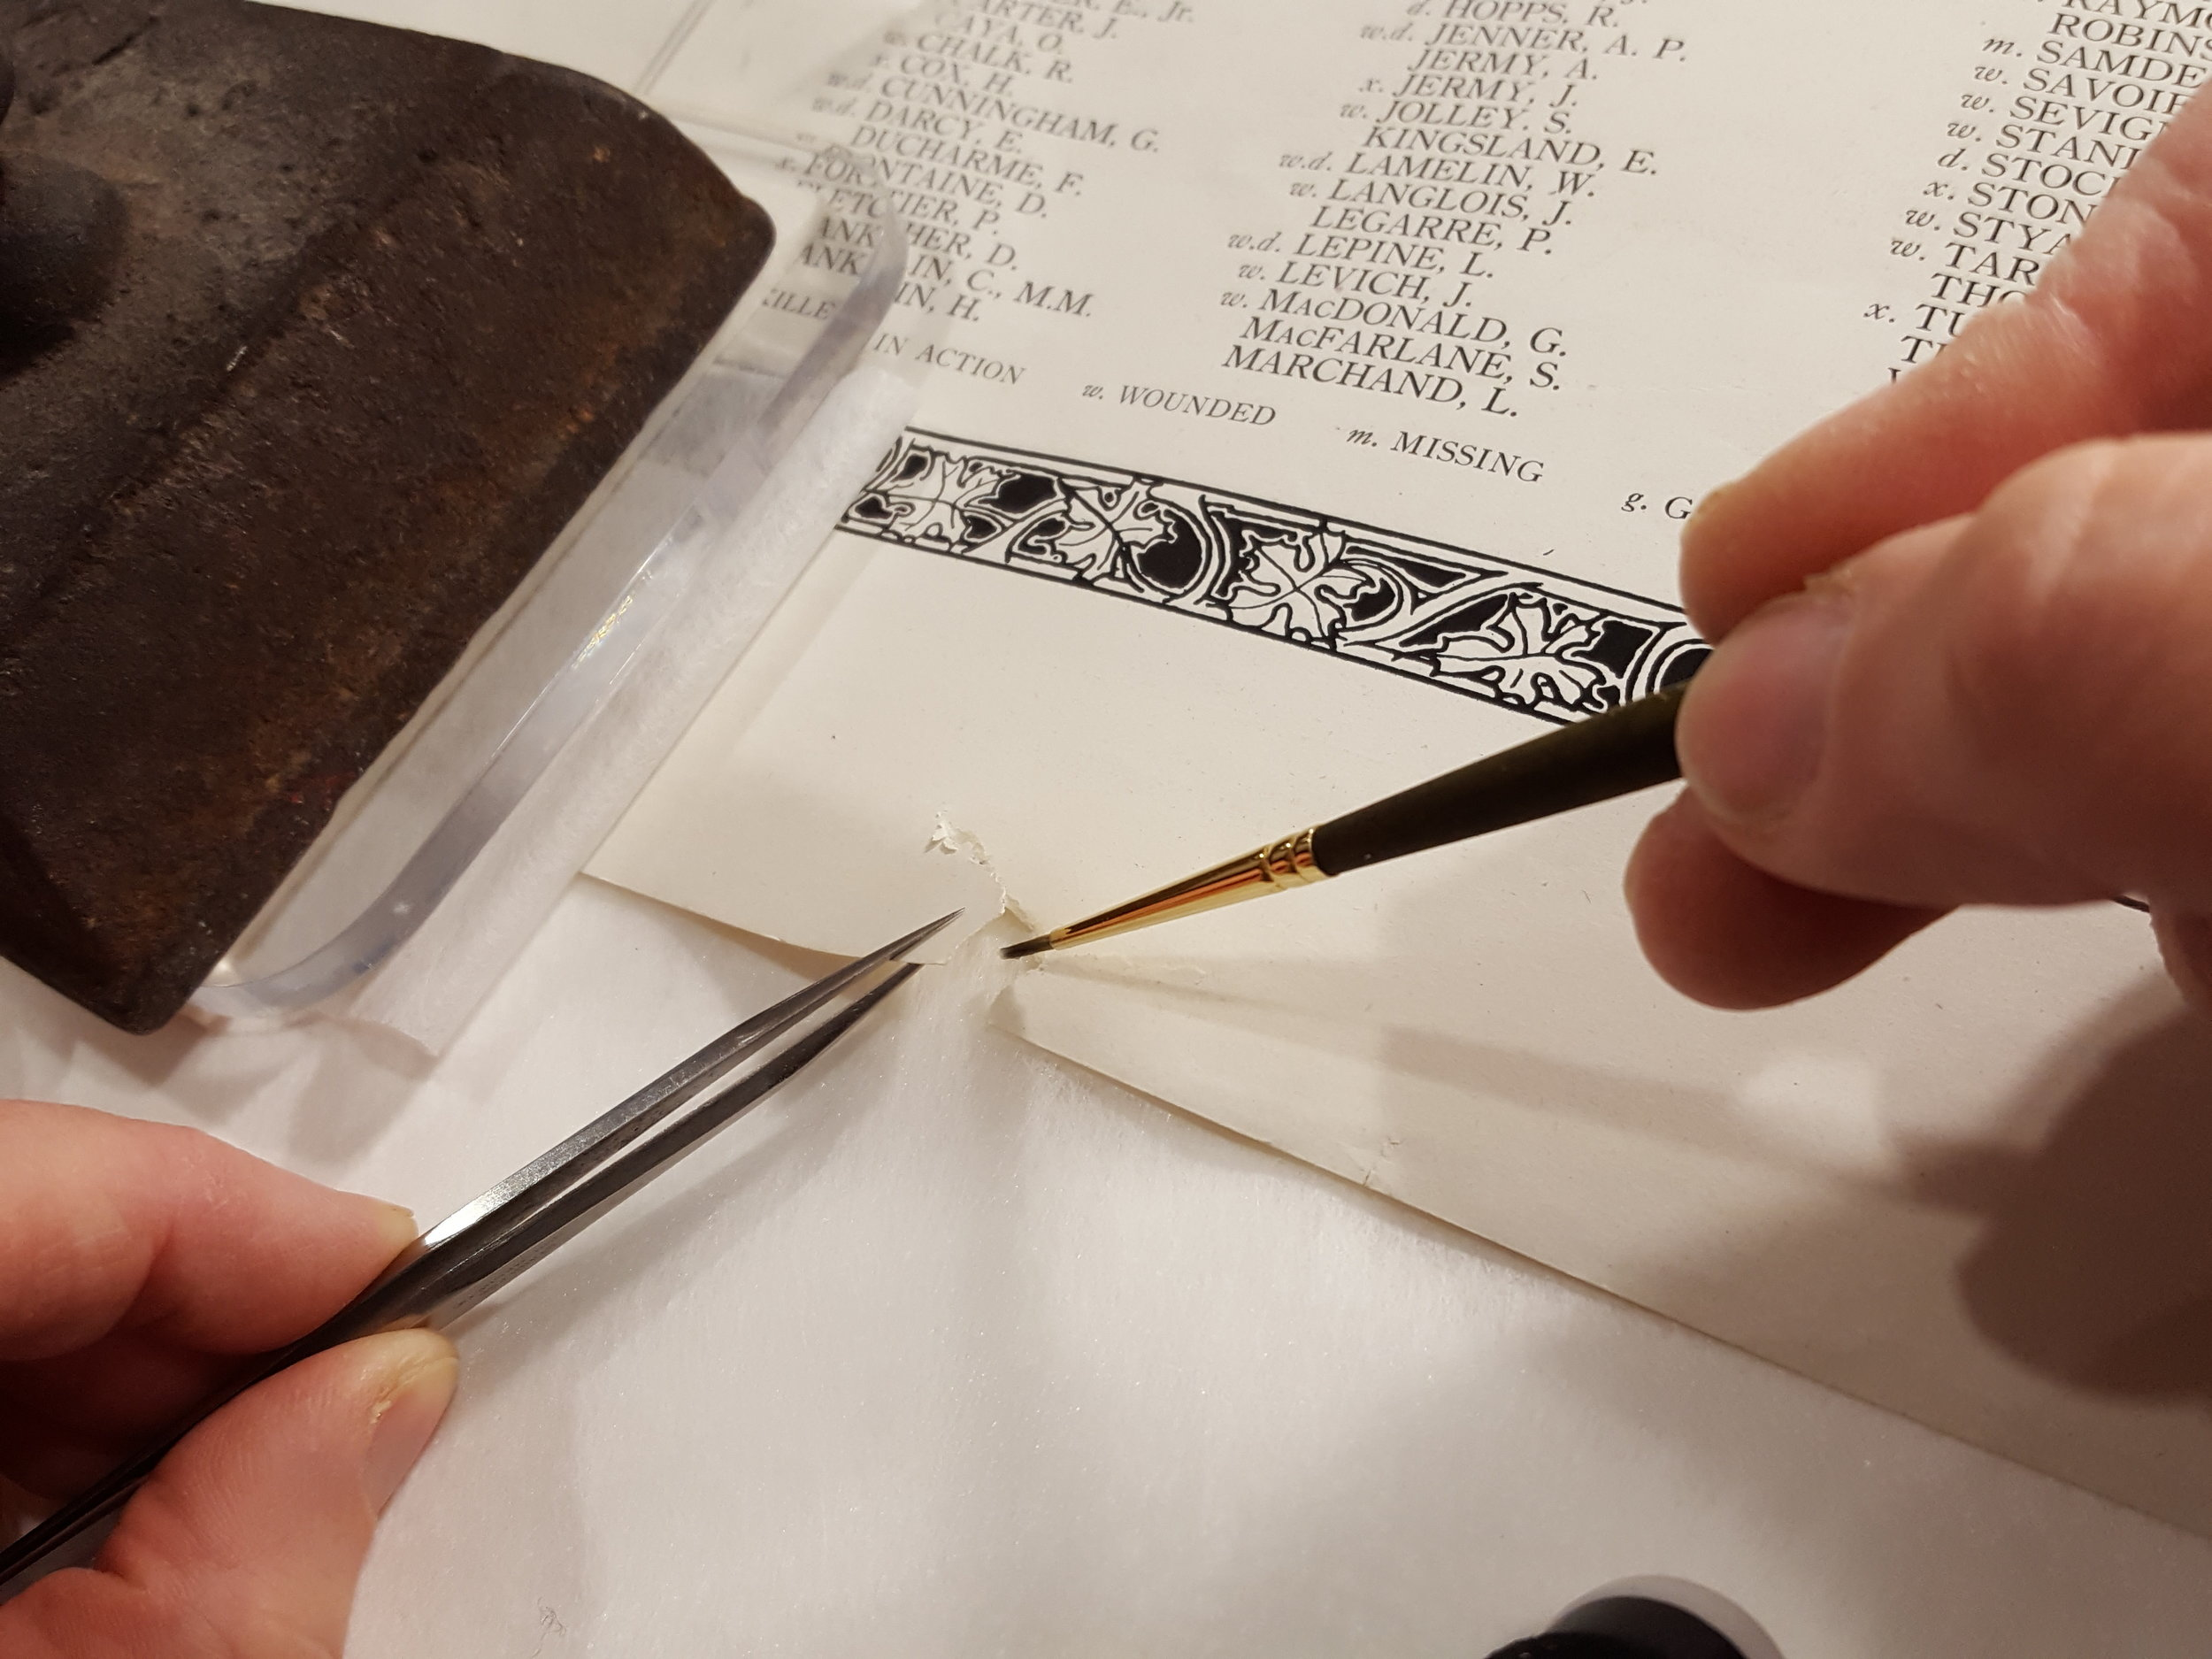 Repairing a tear in the margin with wheat starch paste and Japanese tissue.